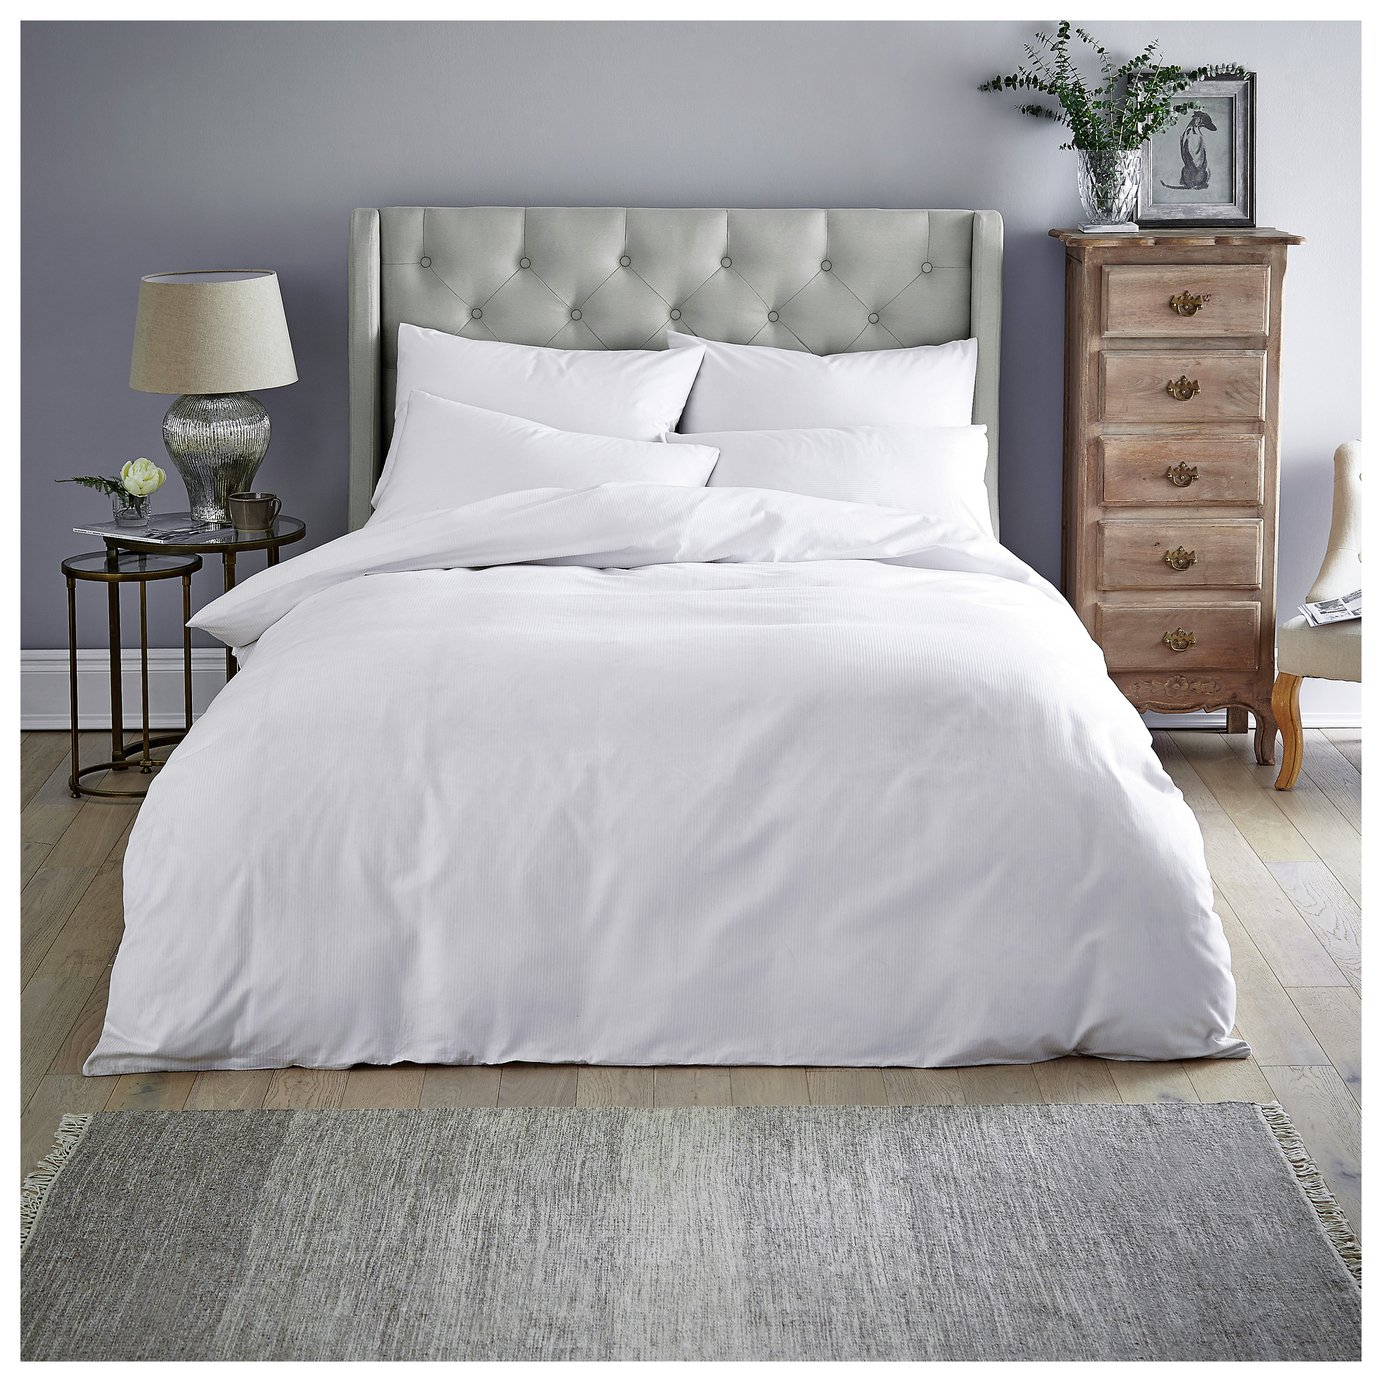 Sainsbury's Home White Sateen Stripe Bedding Set - Superking